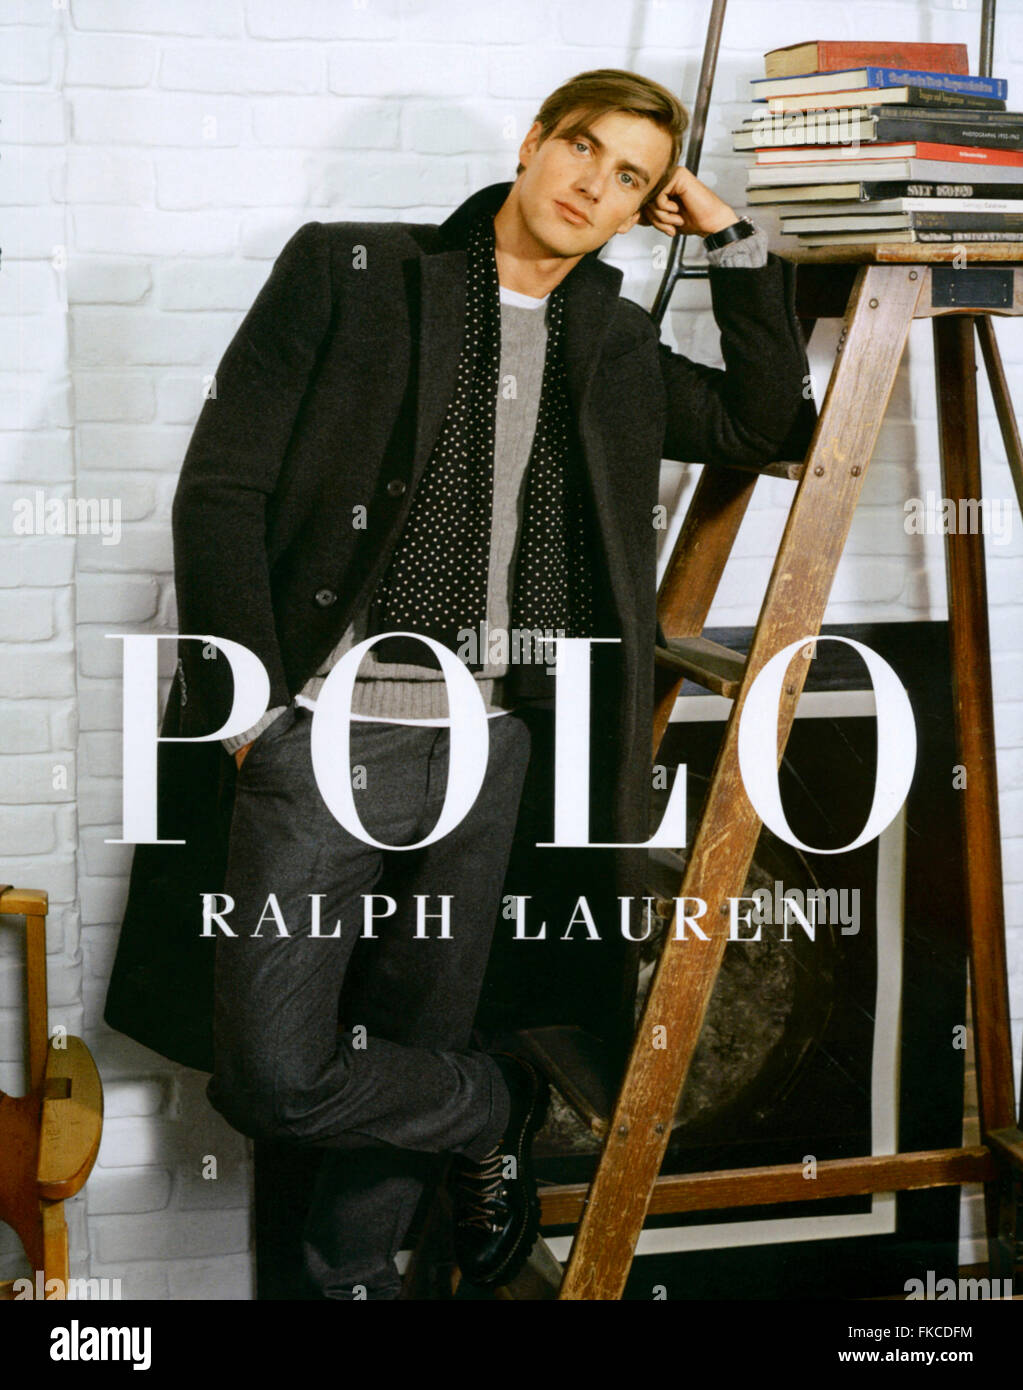 cost charm retail prices outlet on sale Ralph Lauren Advert Stock Photos & Ralph Lauren Advert Stock ...